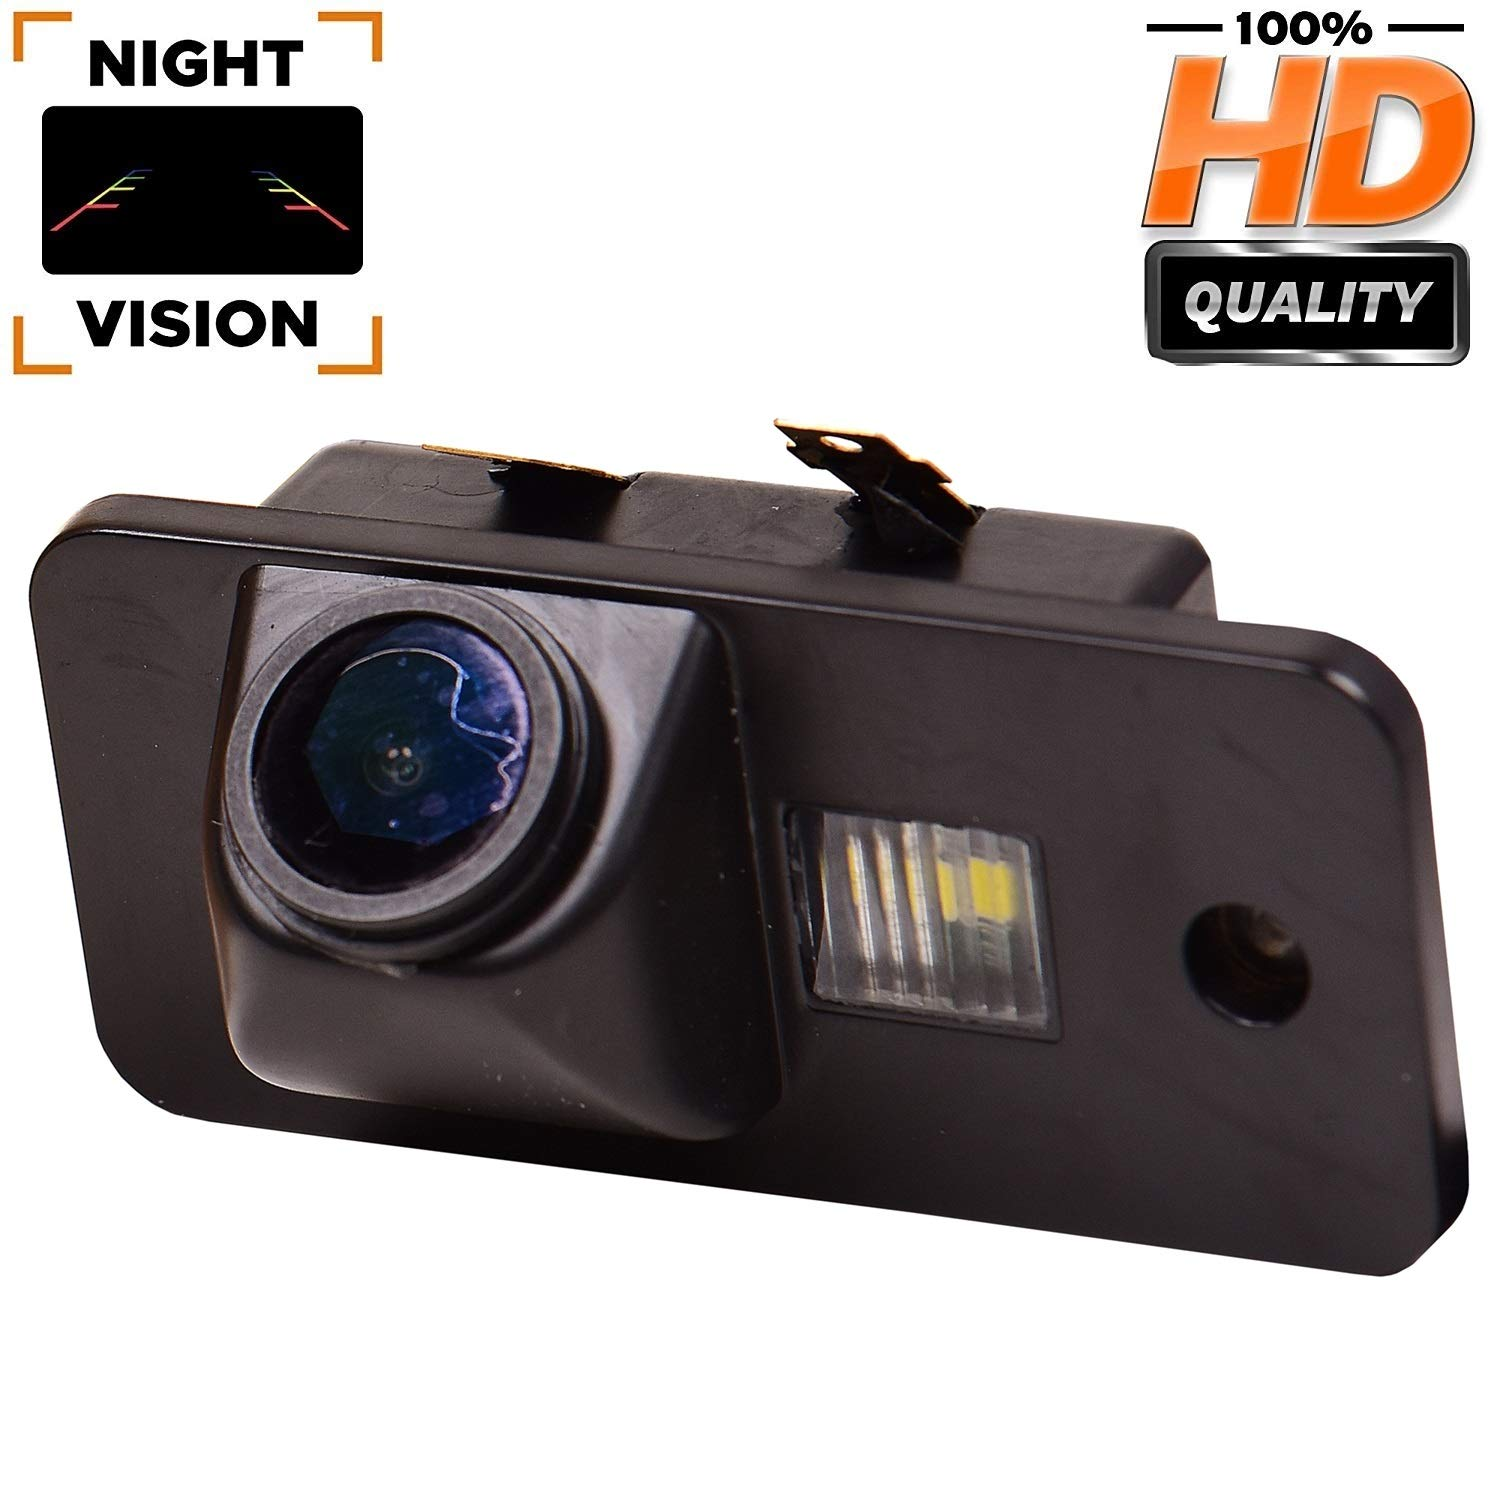 Waterproof Rear-View License Plate Car Rear Backup Parking Reverse Camera for Audi A3 S3 A4 S4 A6 C6 S6 RS6 A8 RS4 TT 8N Q7 Model A= Srew tyle HD 720p Backup Camera